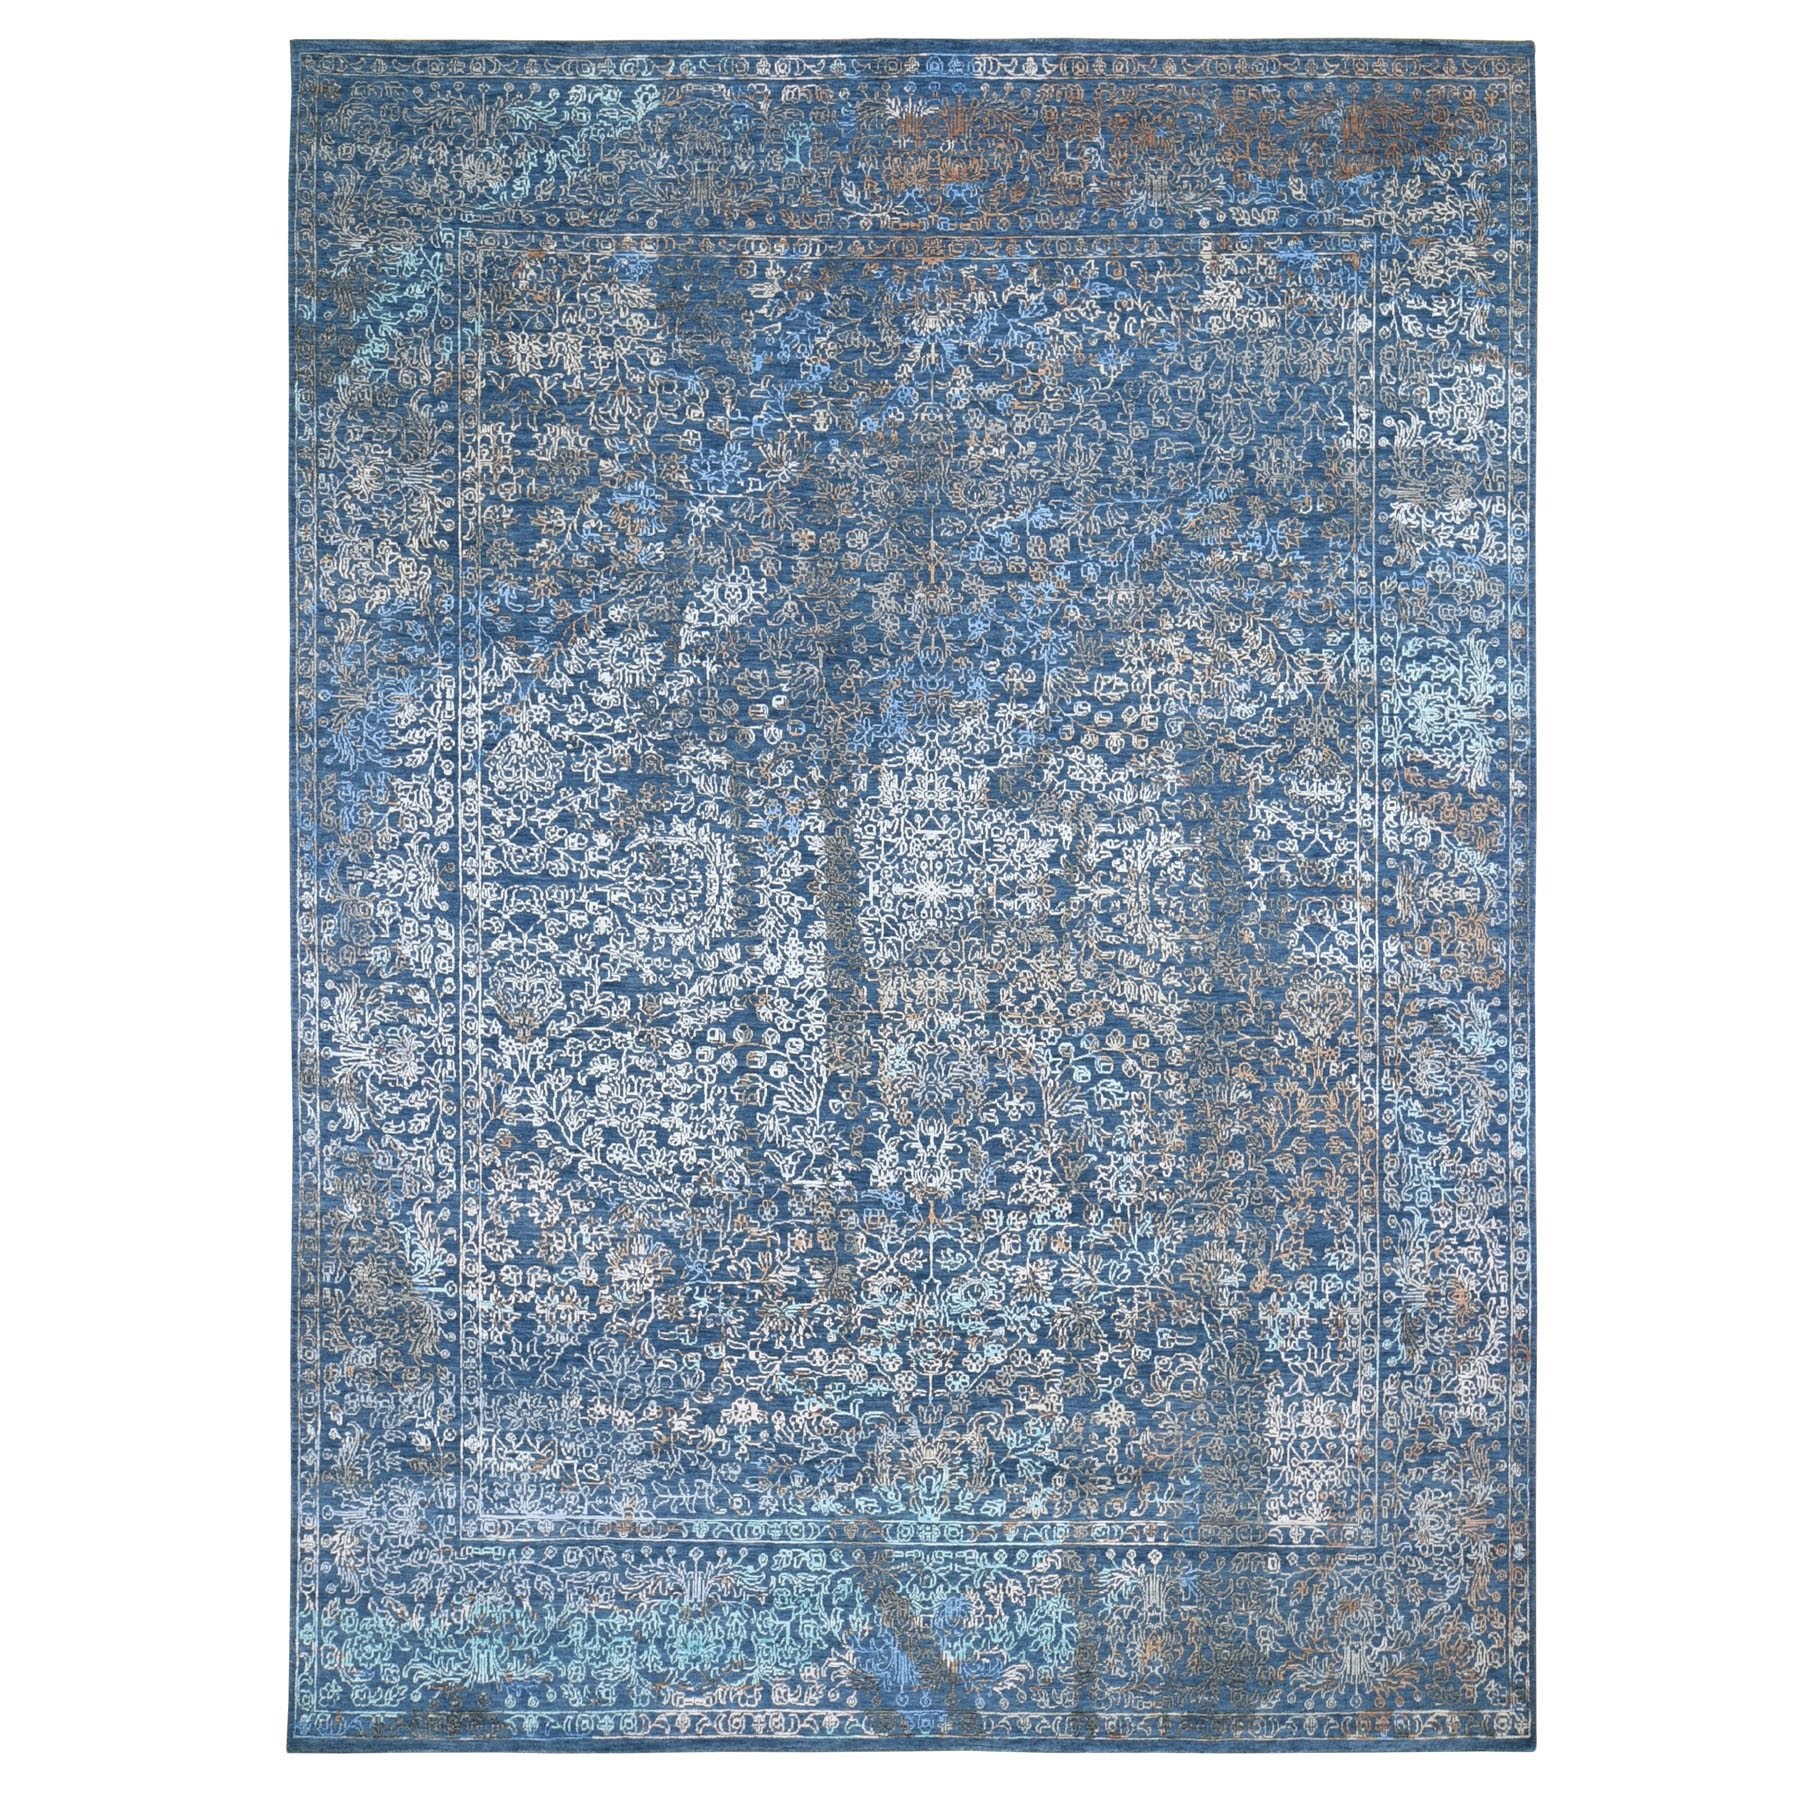 9'x12' Blue Abstract Design Wool And Silk Hand Woven Oriental Rug